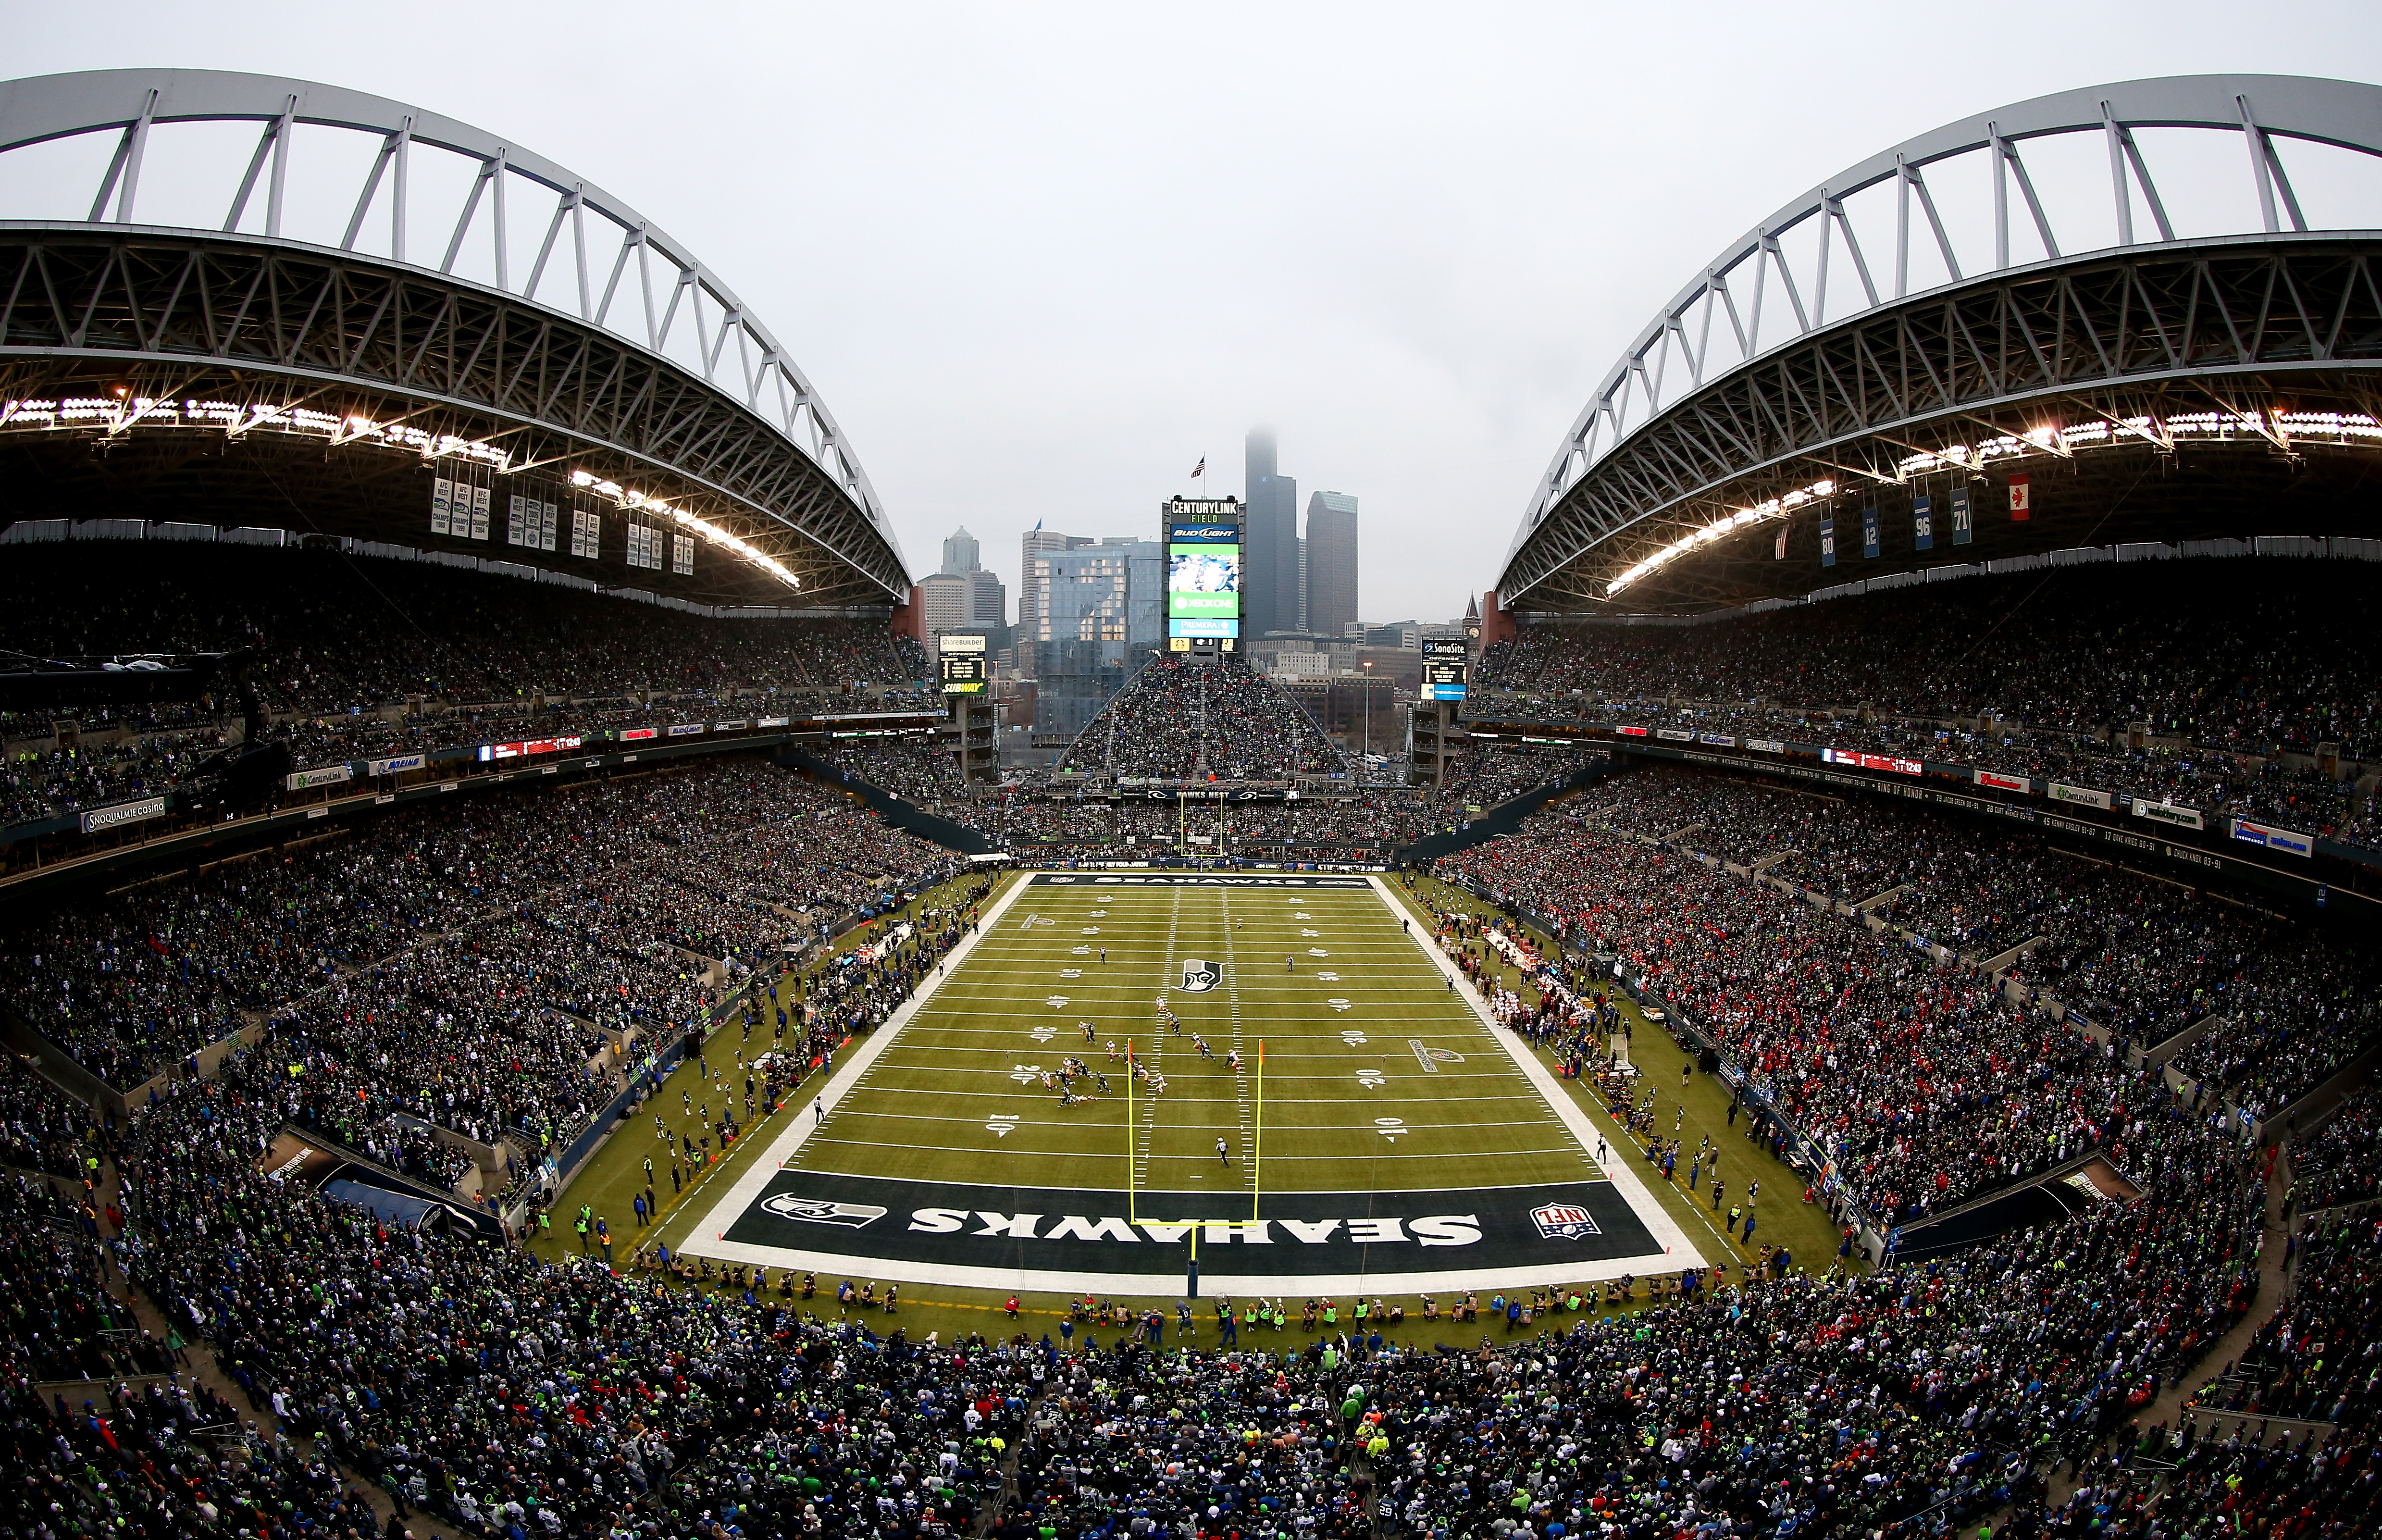 SEATTLE, WA - JANUARY 19:  A general view in the first quarter between the Seattle Seahawks and the San Francisco 49ers during the 2014 NFC Championship at CenturyLink Field on January 19, 2014 in Seattle, Washington.  (Photo by Tom Pennington/Getty Images)